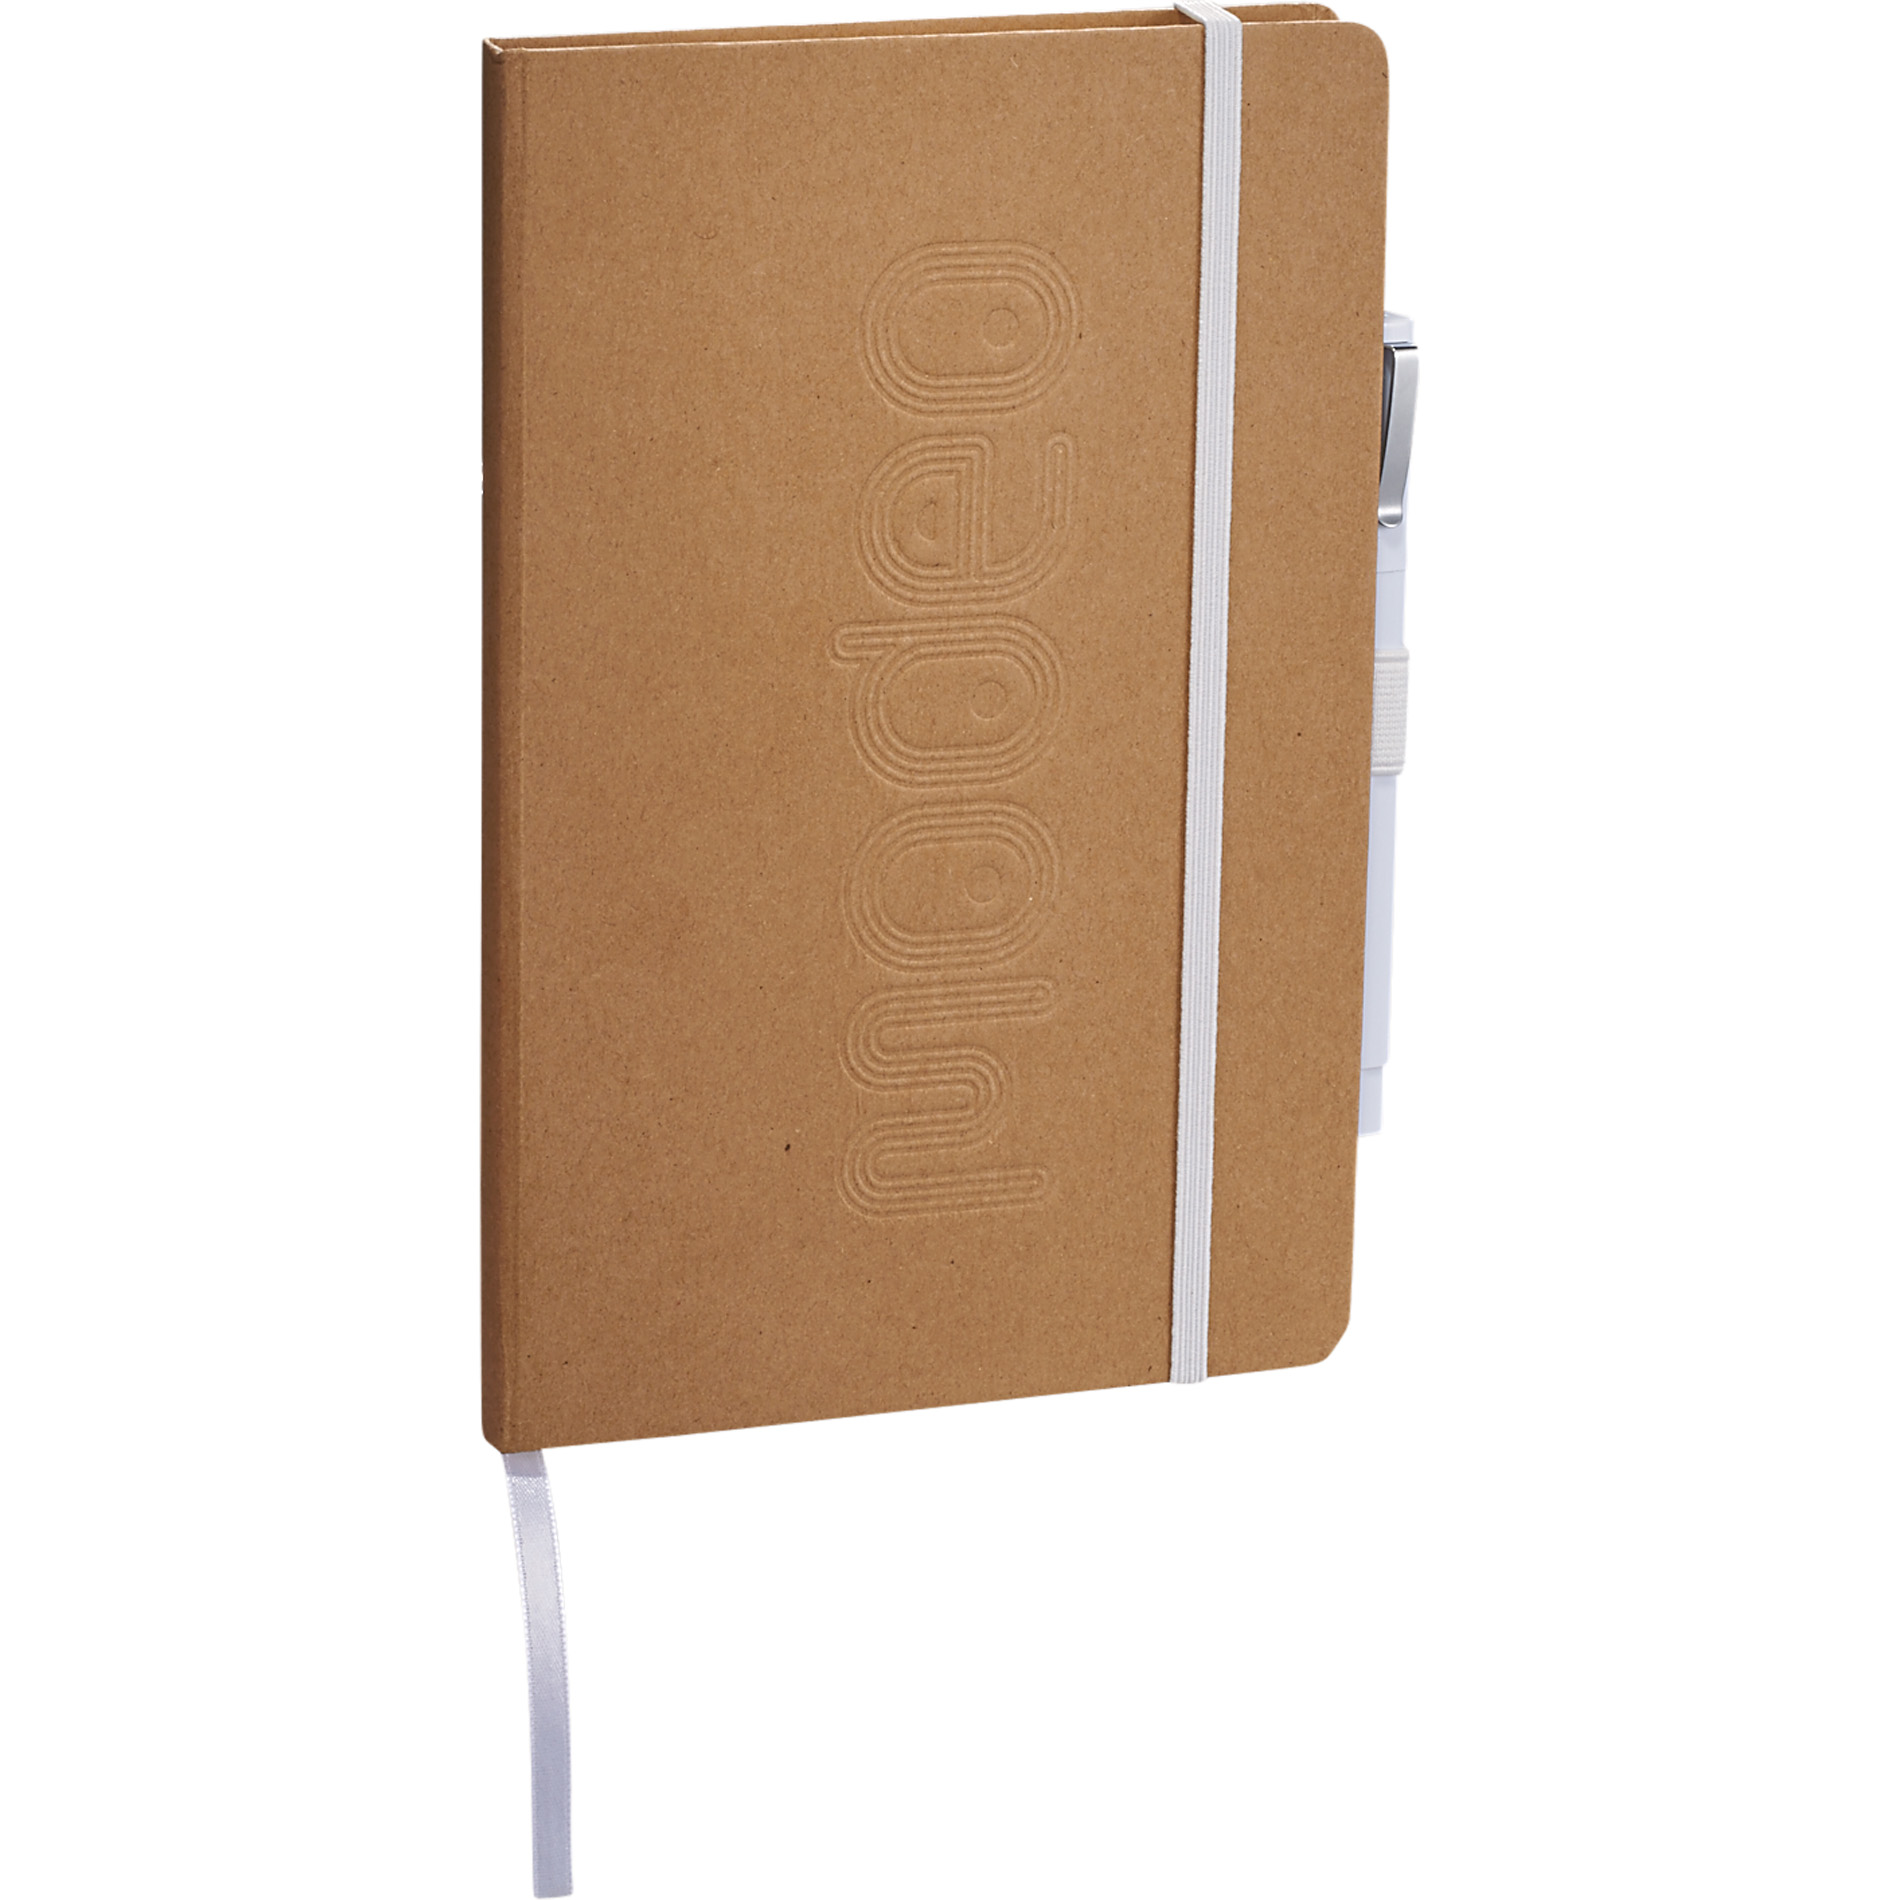 Eco friendly journal set with white accents